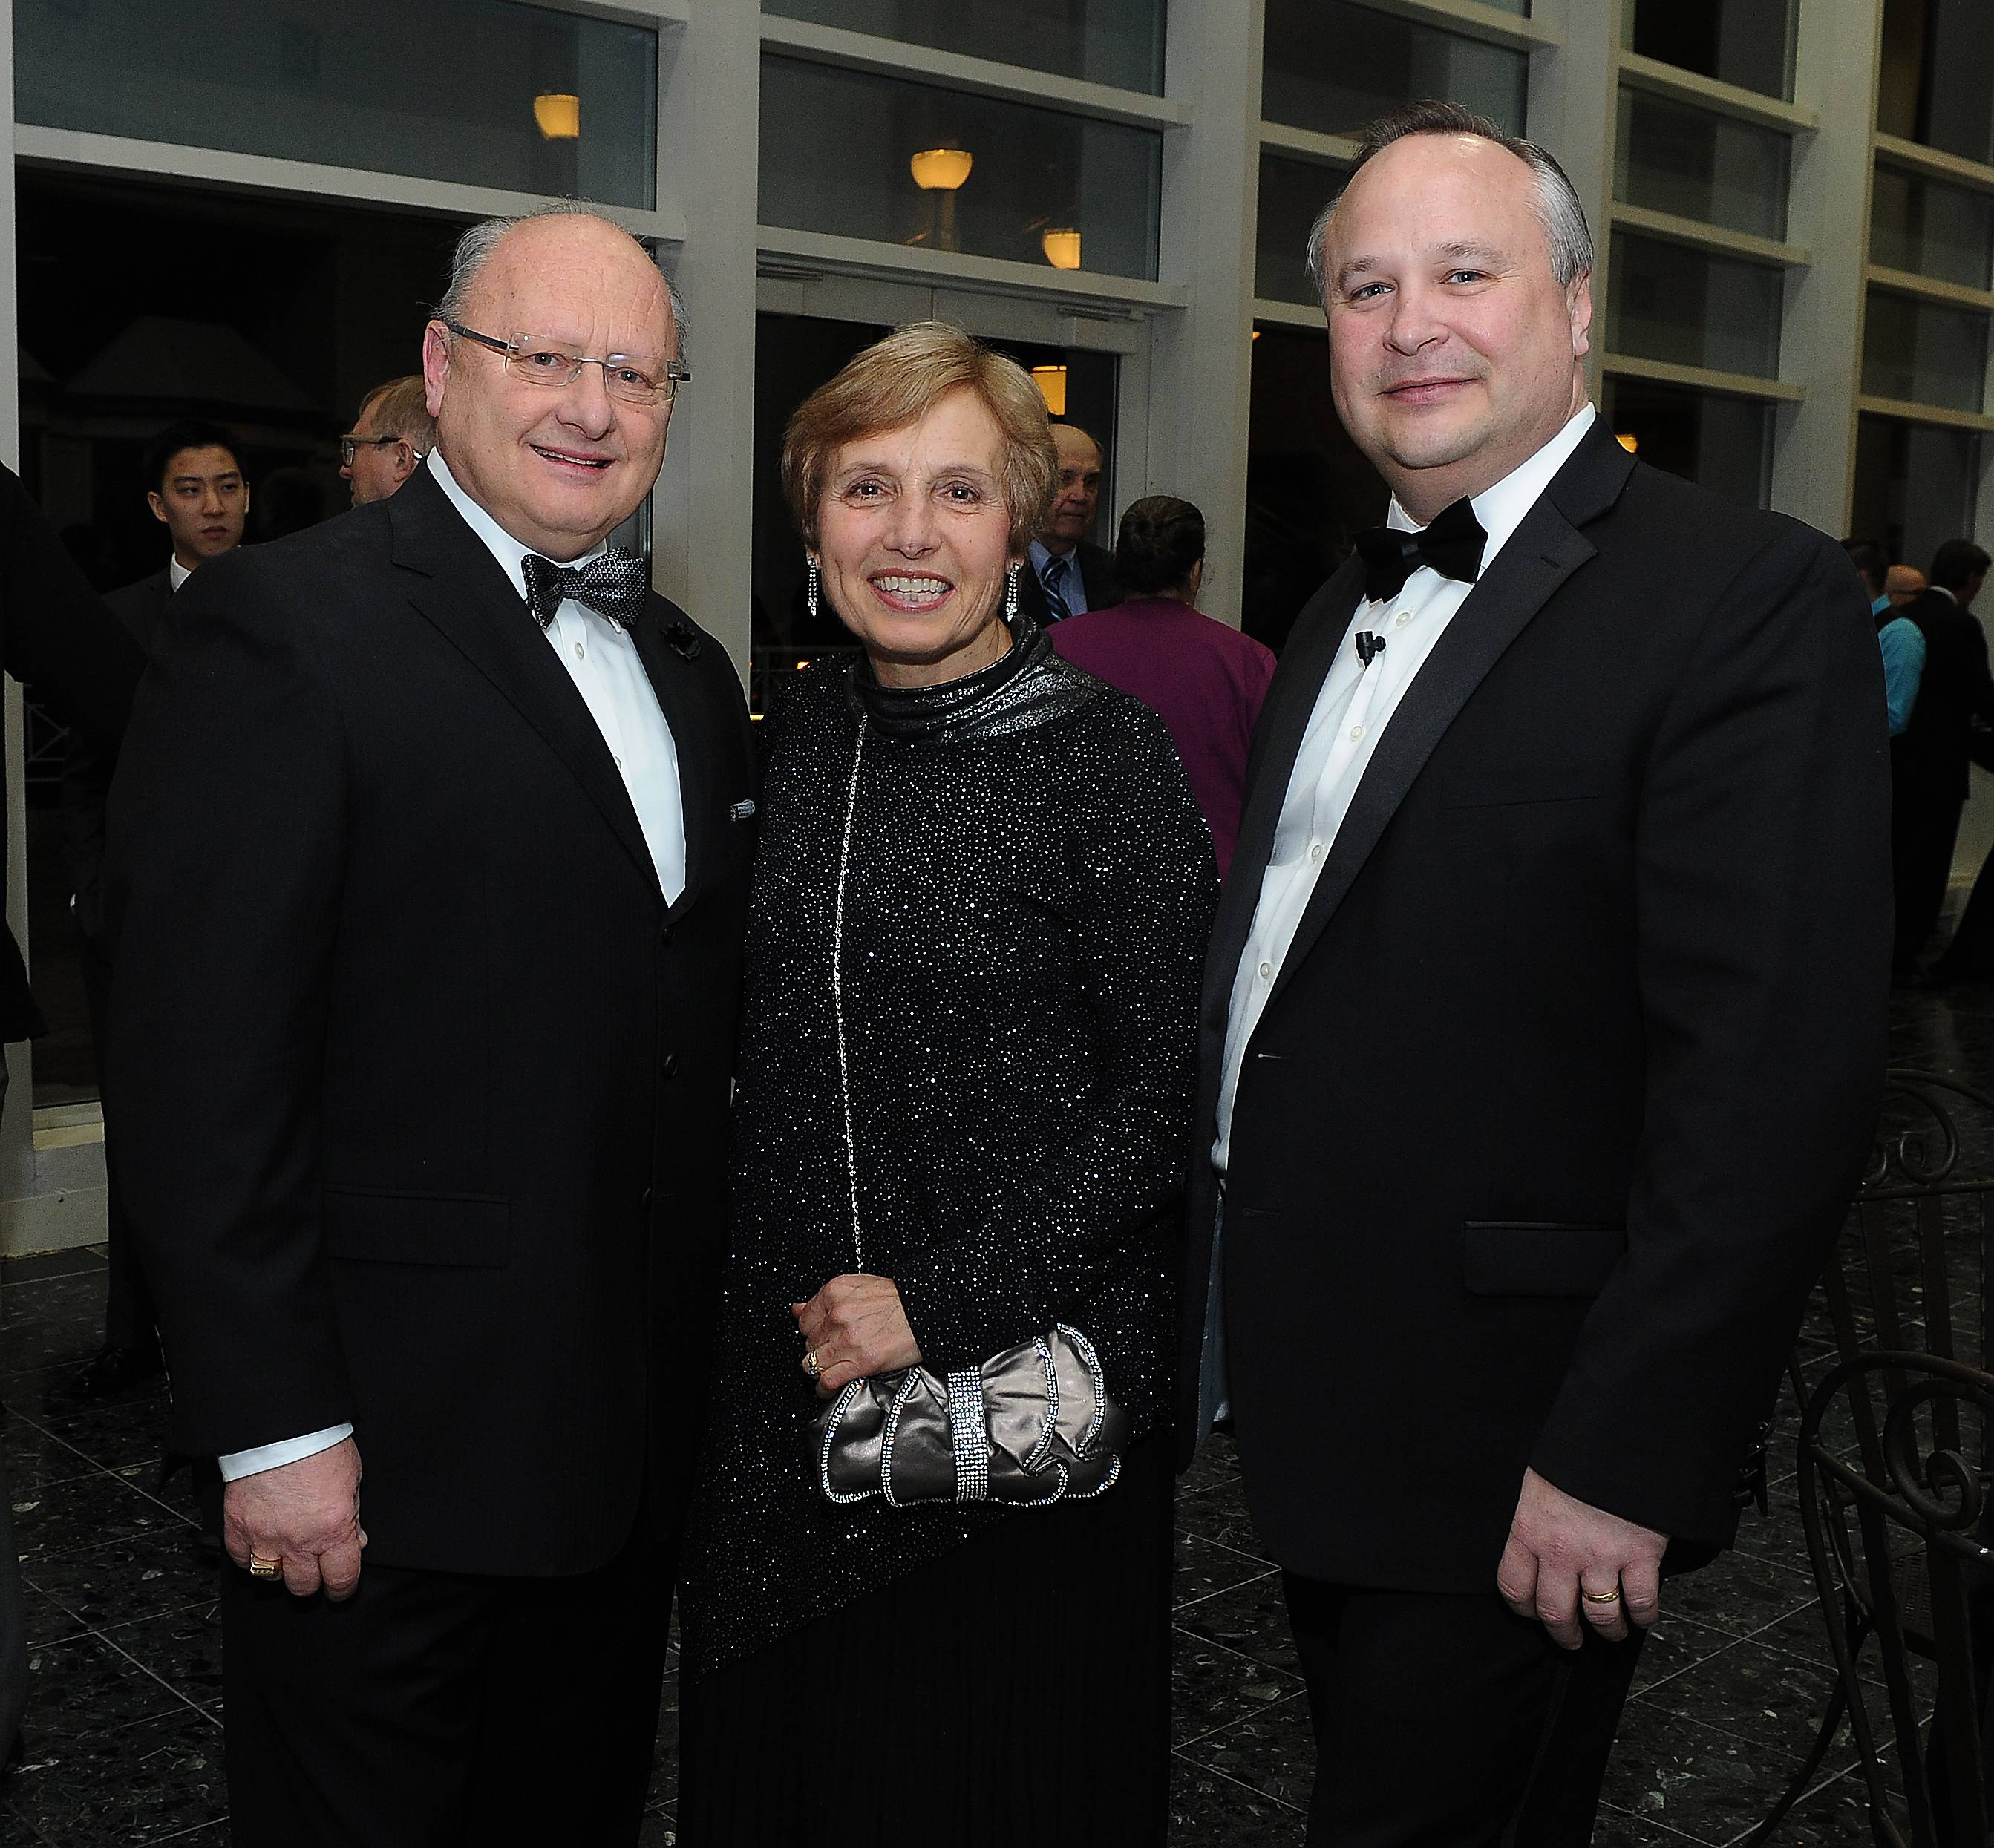 Frank Lesniak and his wife, Joanne, of Arlington Heights stand with Jon Ridler, right, executive director of the Arlington Heights Chamber of Commerce, at the chamber's 70th annual Installation and Awards Celebration at Arlington International Racecourse on Friday. Lesniak was the winner of the 2016 Business Volunteer of the Year Award.